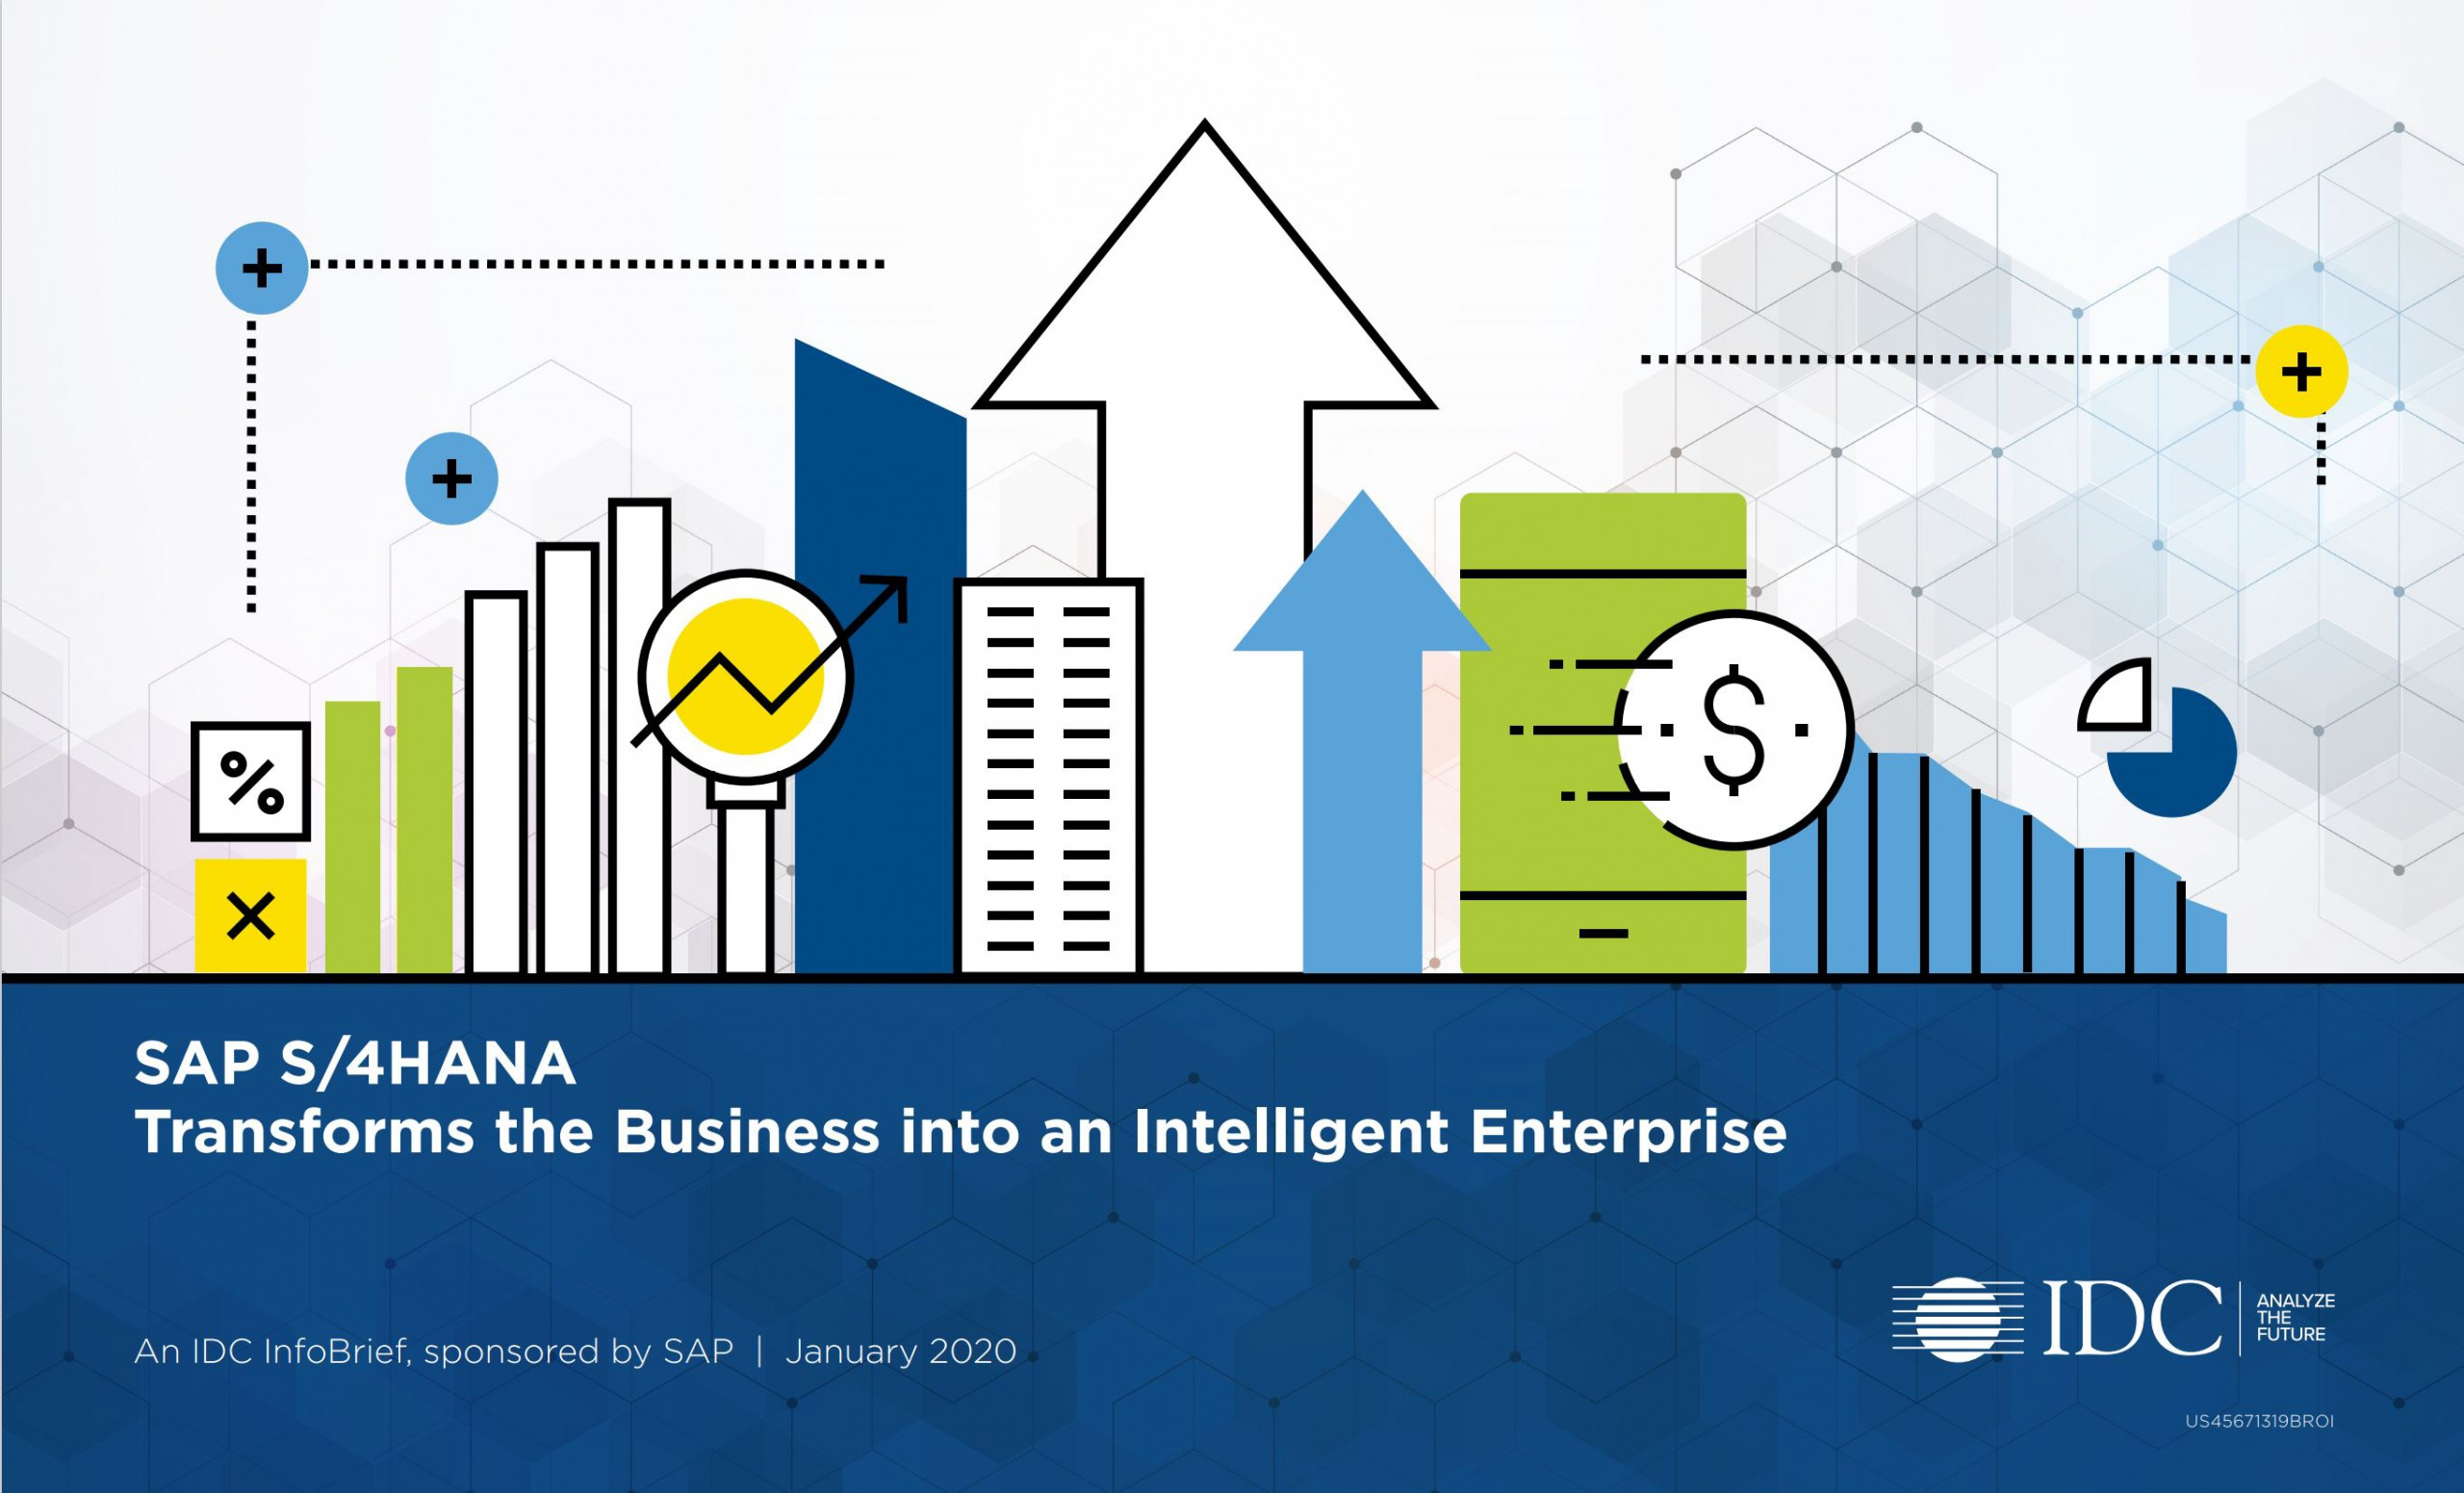 Whitepaper: 'The Intelligent Enterprise for High Tech'